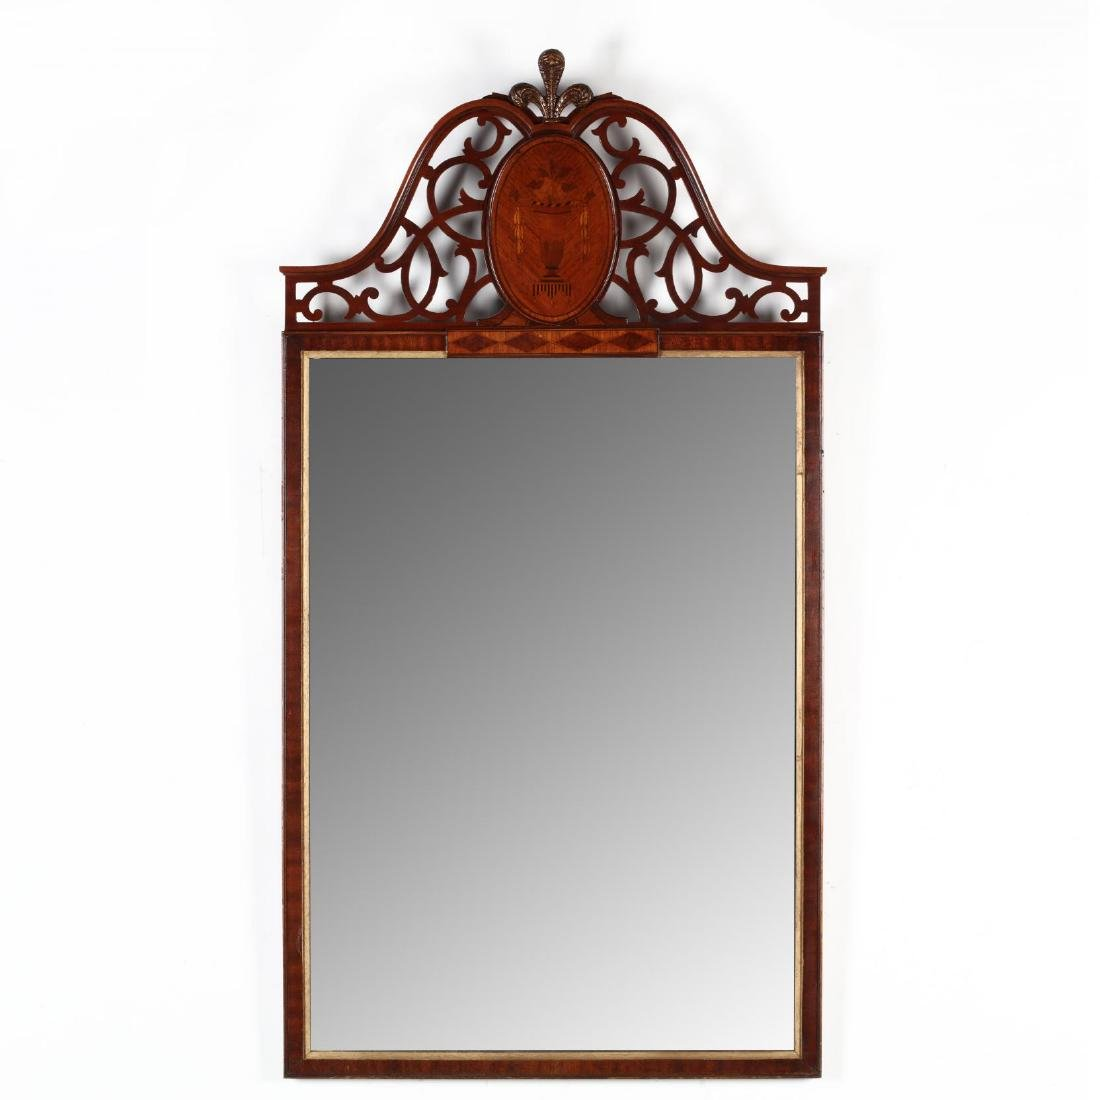 A Vintage Inlaid Mahogany Wall Mirror